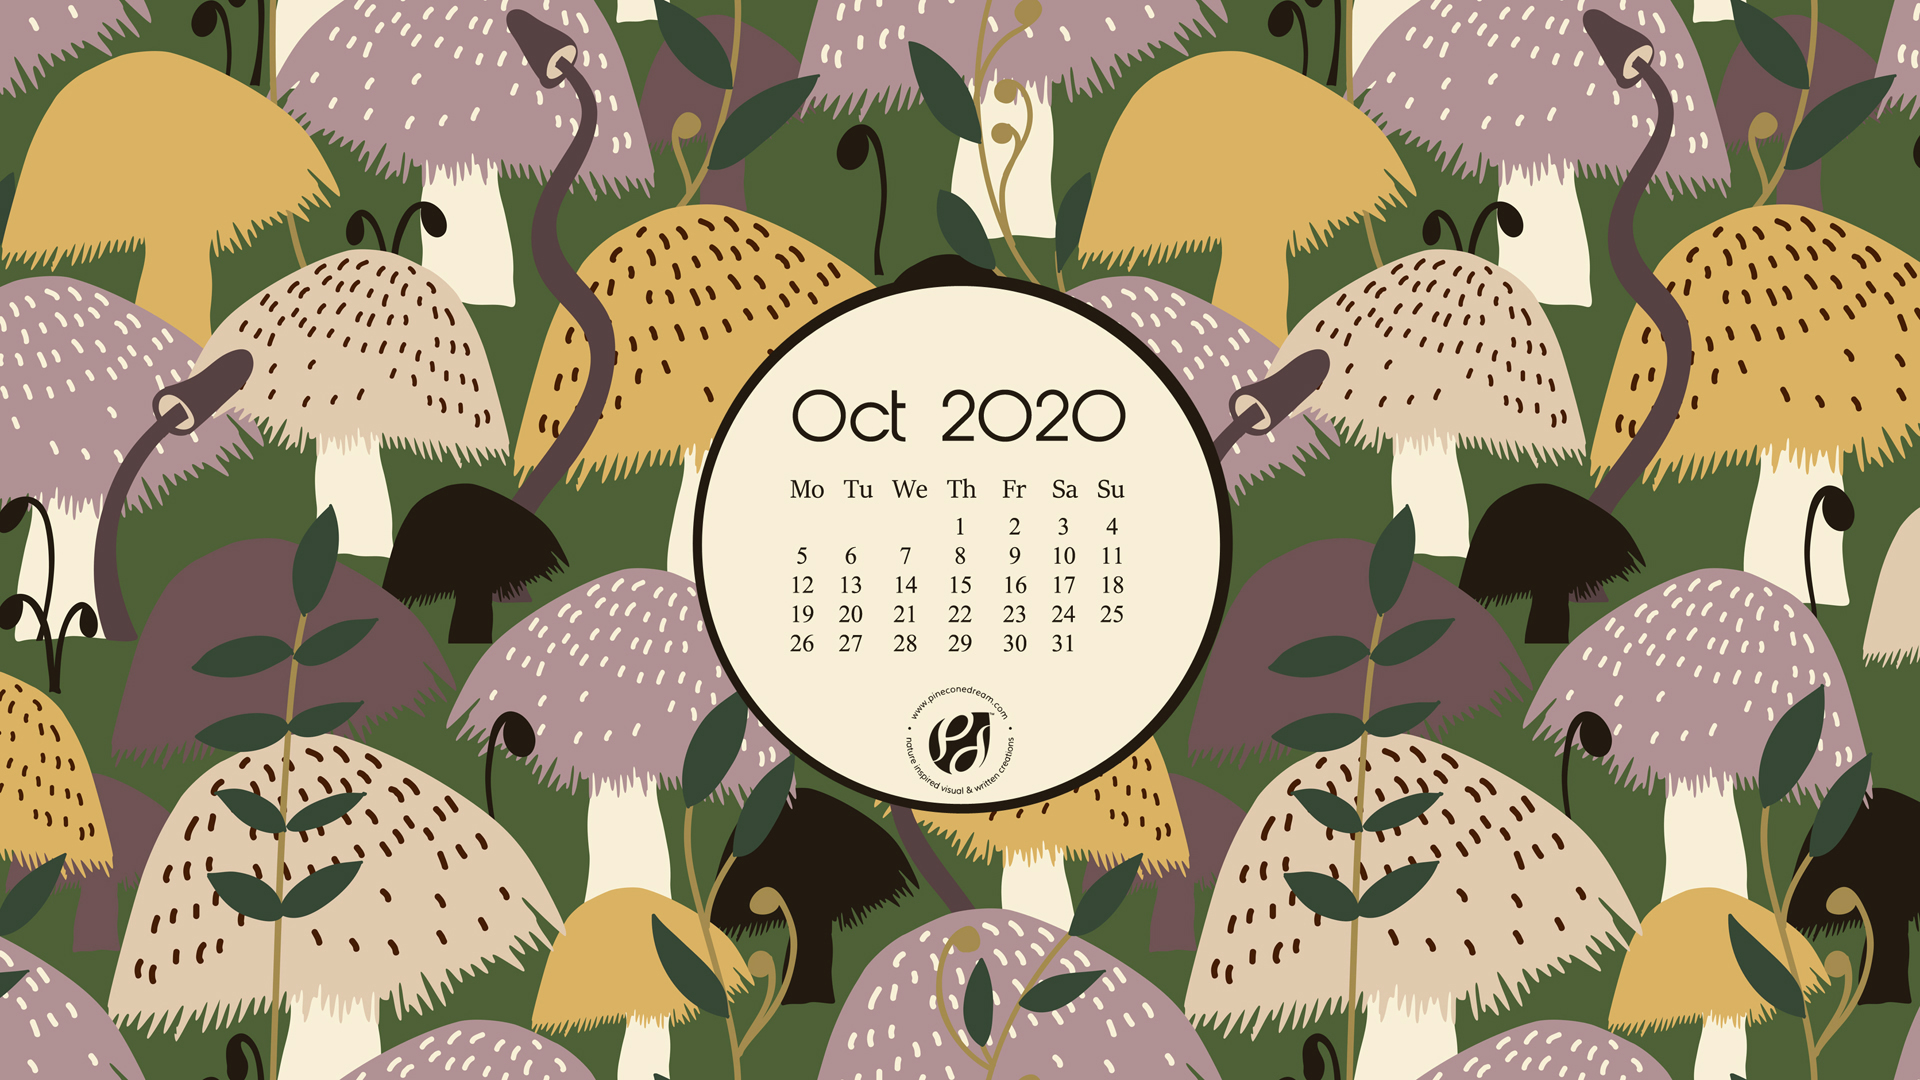 Oct 2020 Free Calendar Wallpapers Printable Planner Illustrated The Mushroom Field Pineconedream By Gyaneshwari Dave